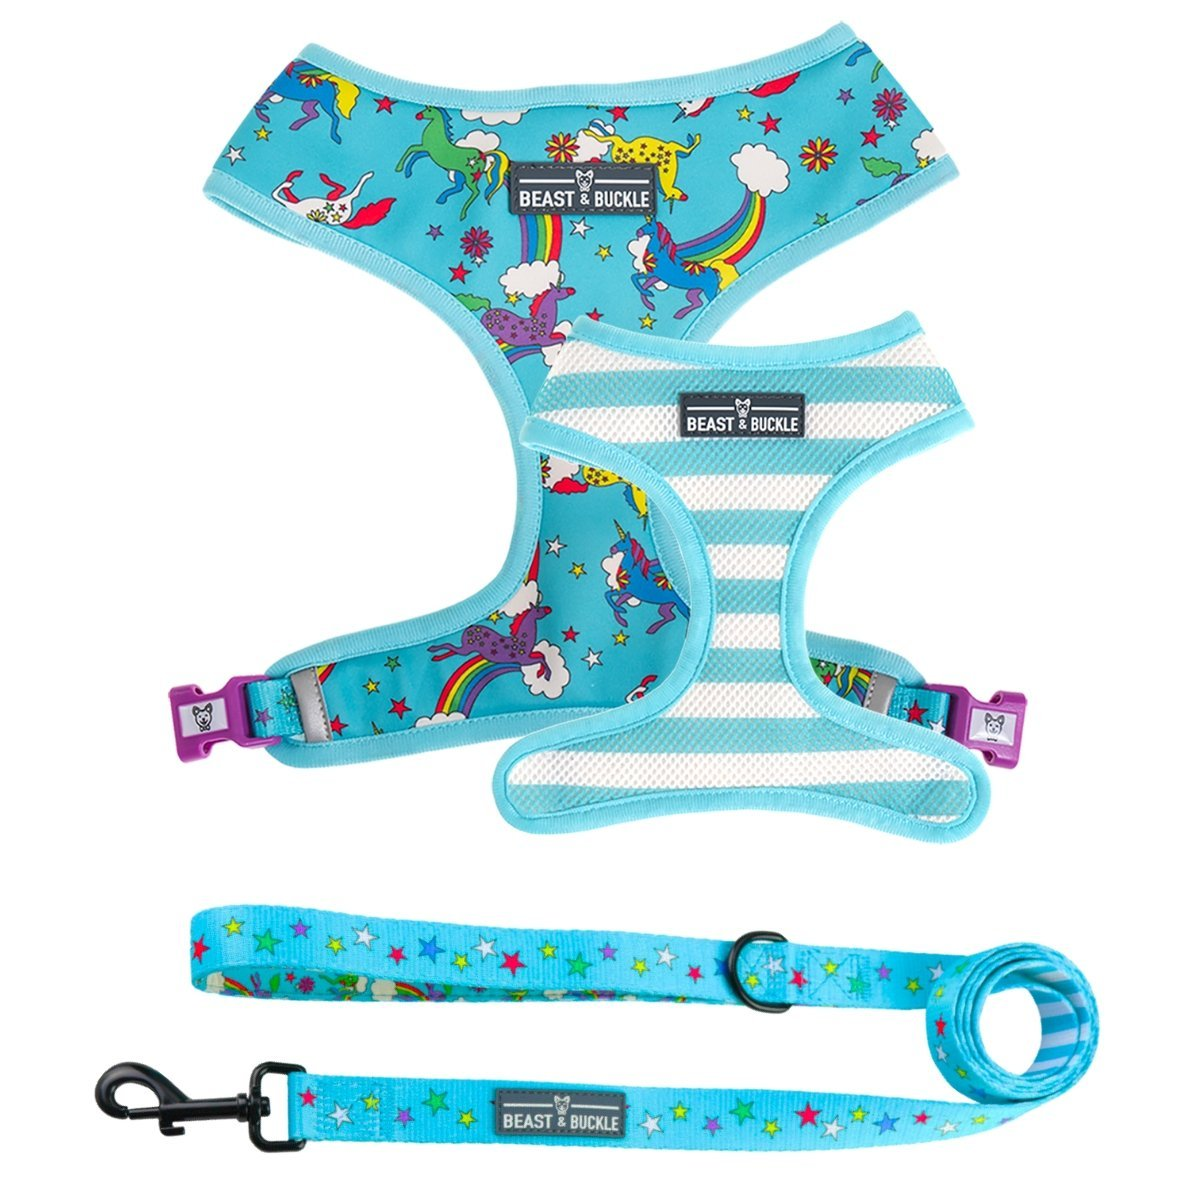 Unicorn Harness and Leash Set - Beast & Buckle